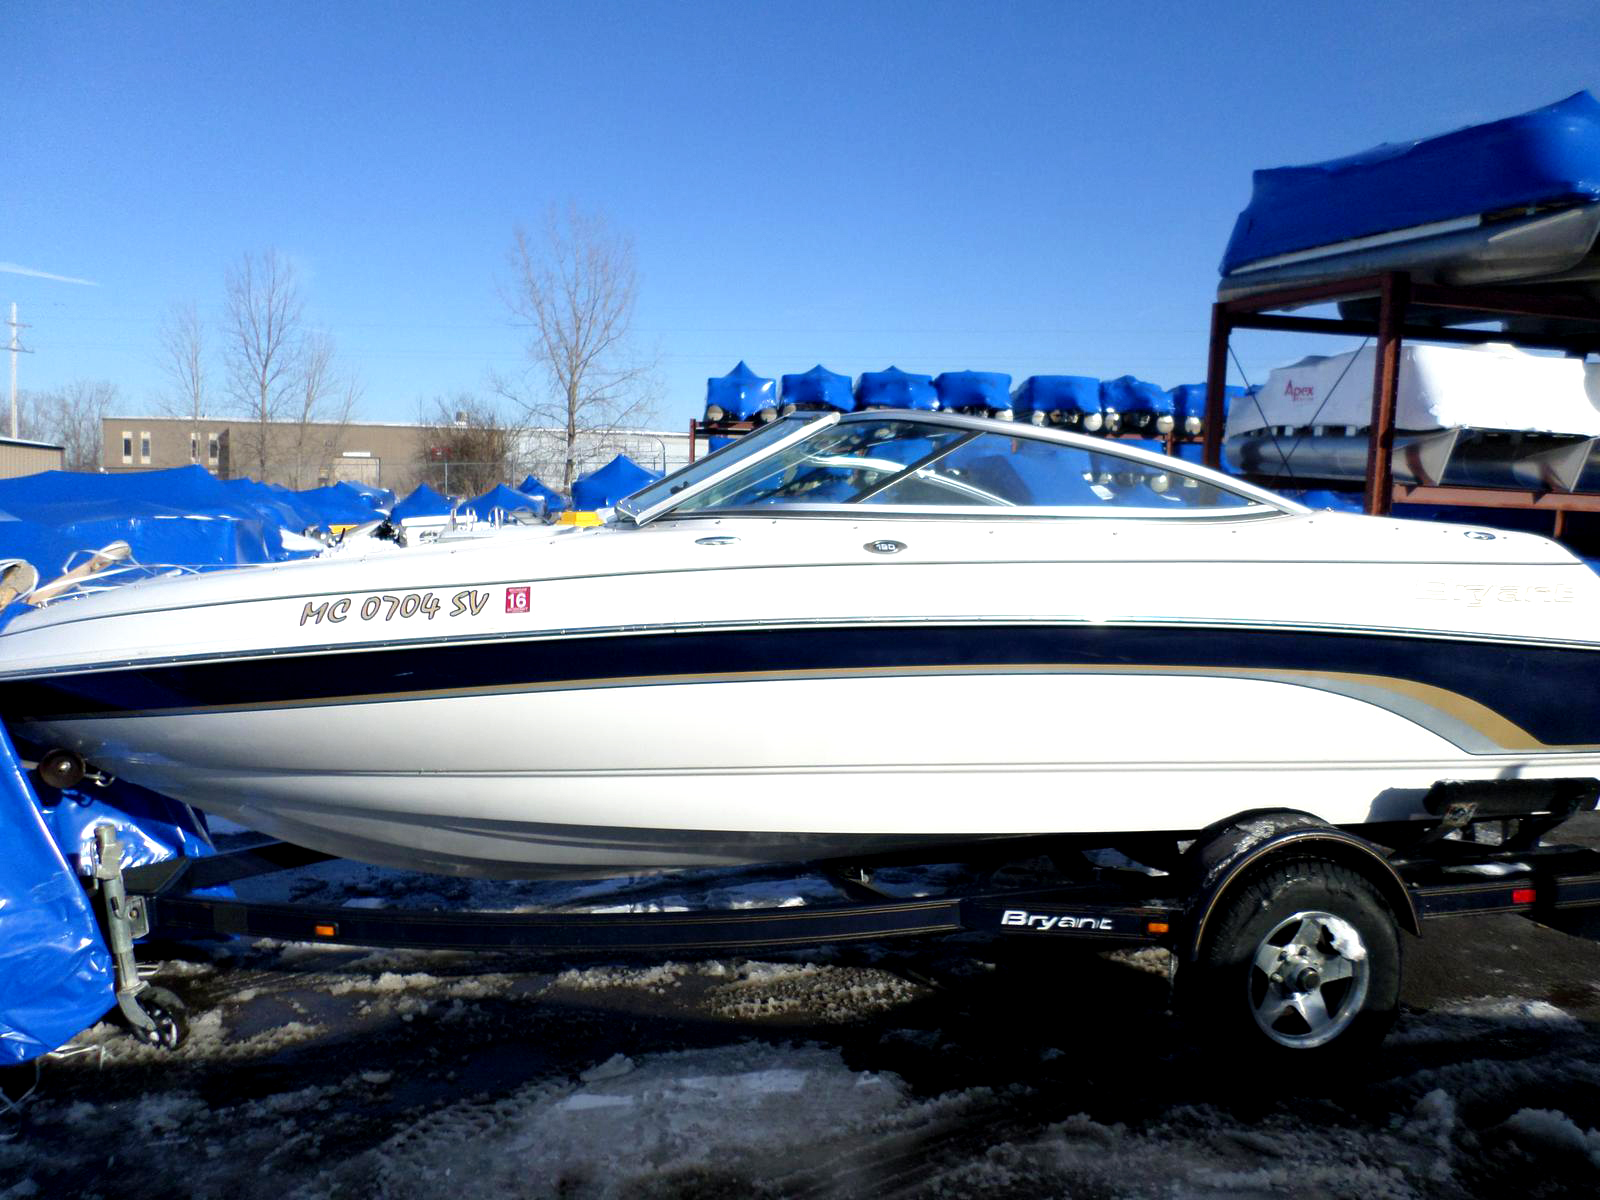 2005 BRYANT 190 9383 43L V6 Mercruiser low hours trailer included 16500